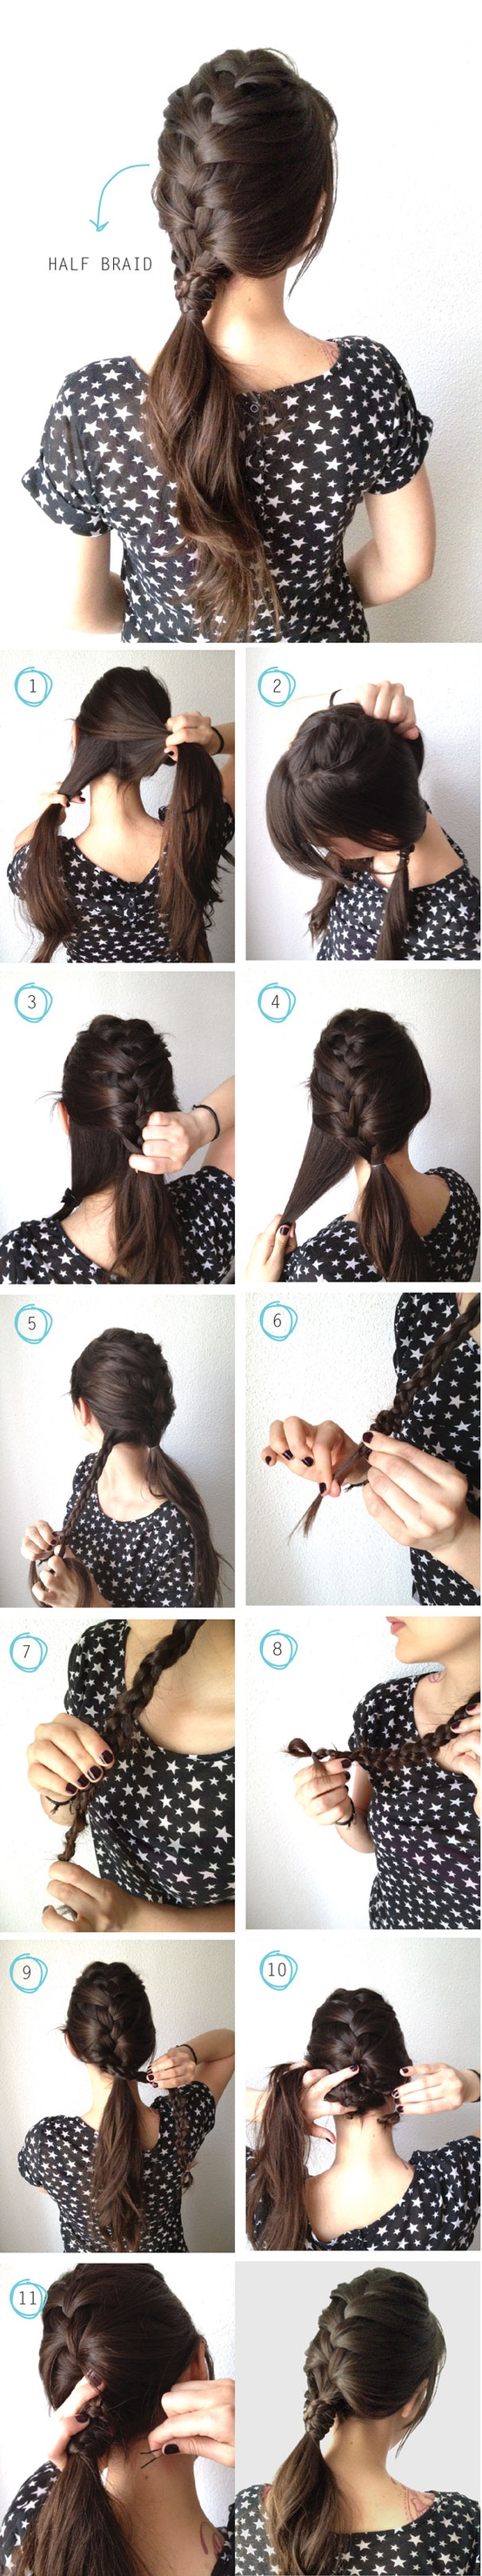 BRAIDED HIAIRSTYLE IDEAS